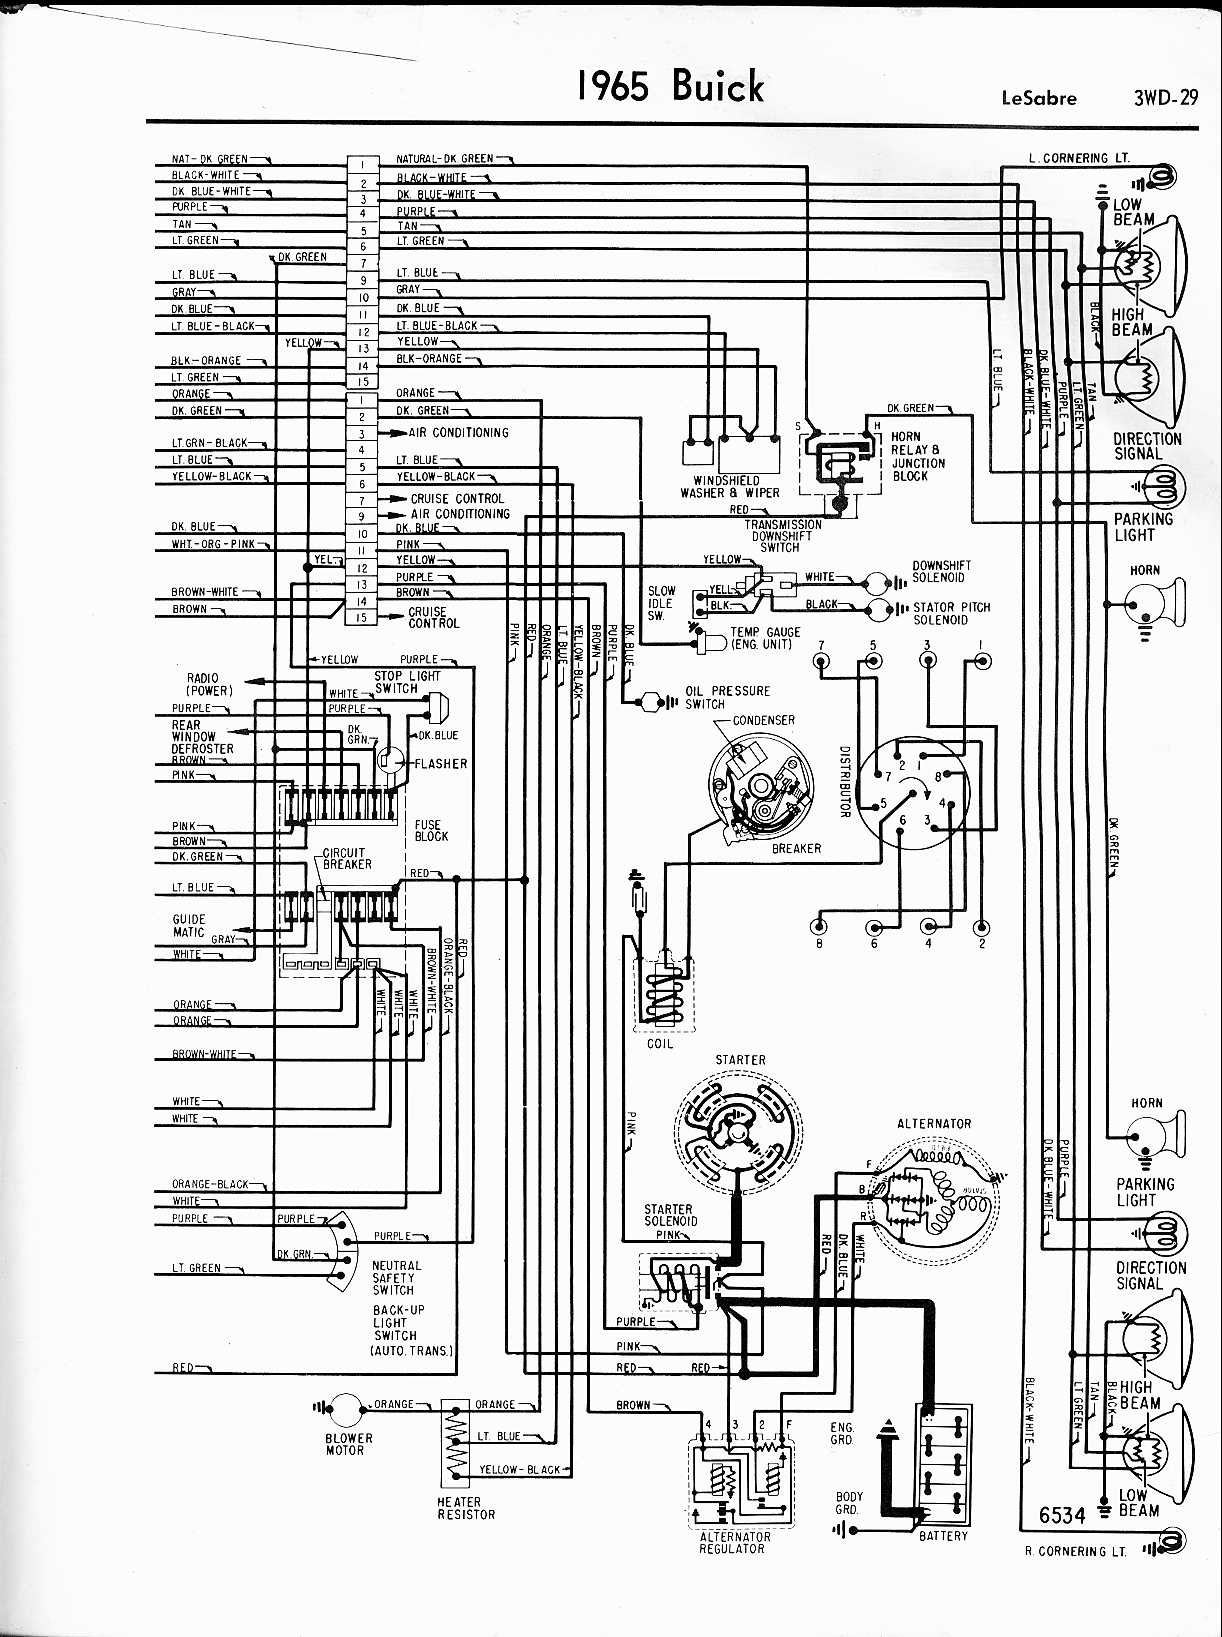 1993 Buick Lesabre Wiring Diagram - Coachmen Catalina Wiring Diagram -  coded-03.ajingemut.decorresine.itWiring Diagram Resource